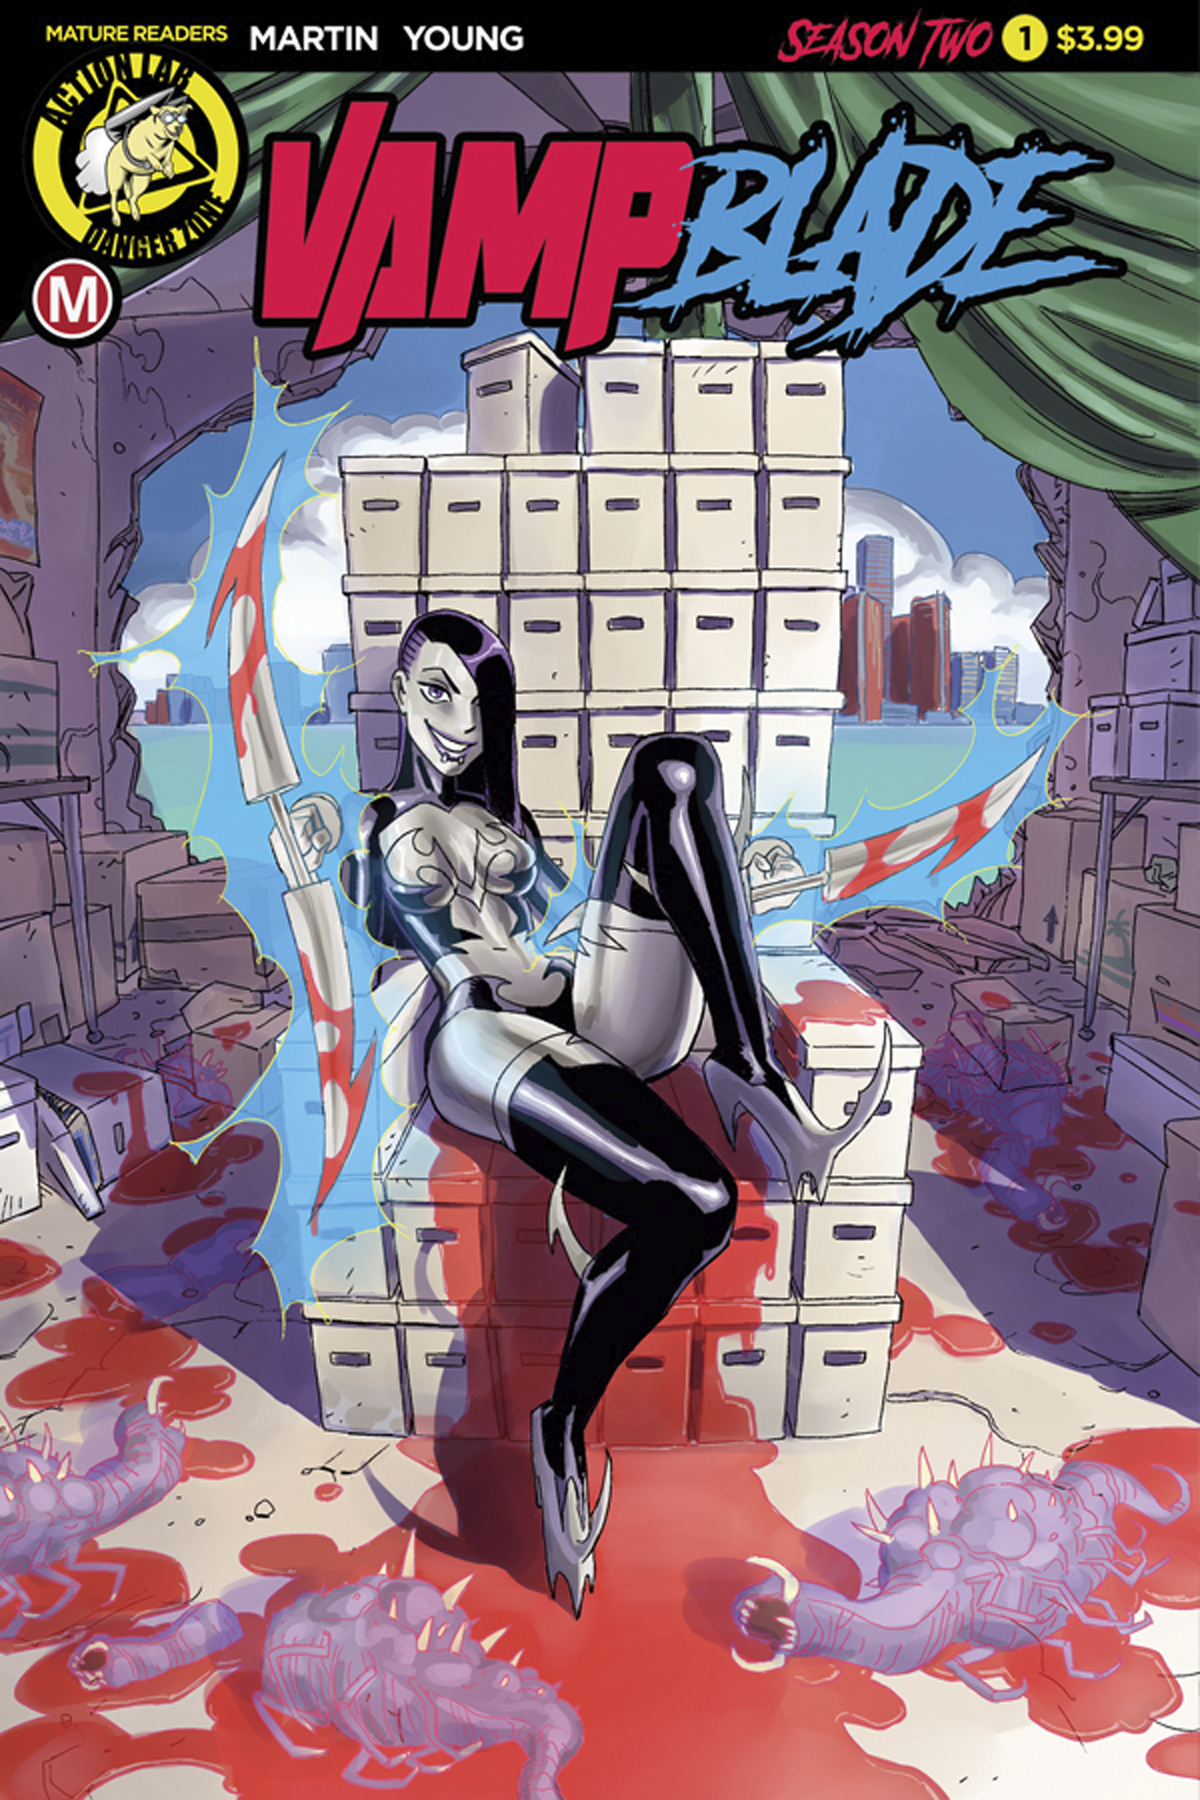 VAMPBLADE SEASON TWO #1 CVR A WINSTON YOUNG